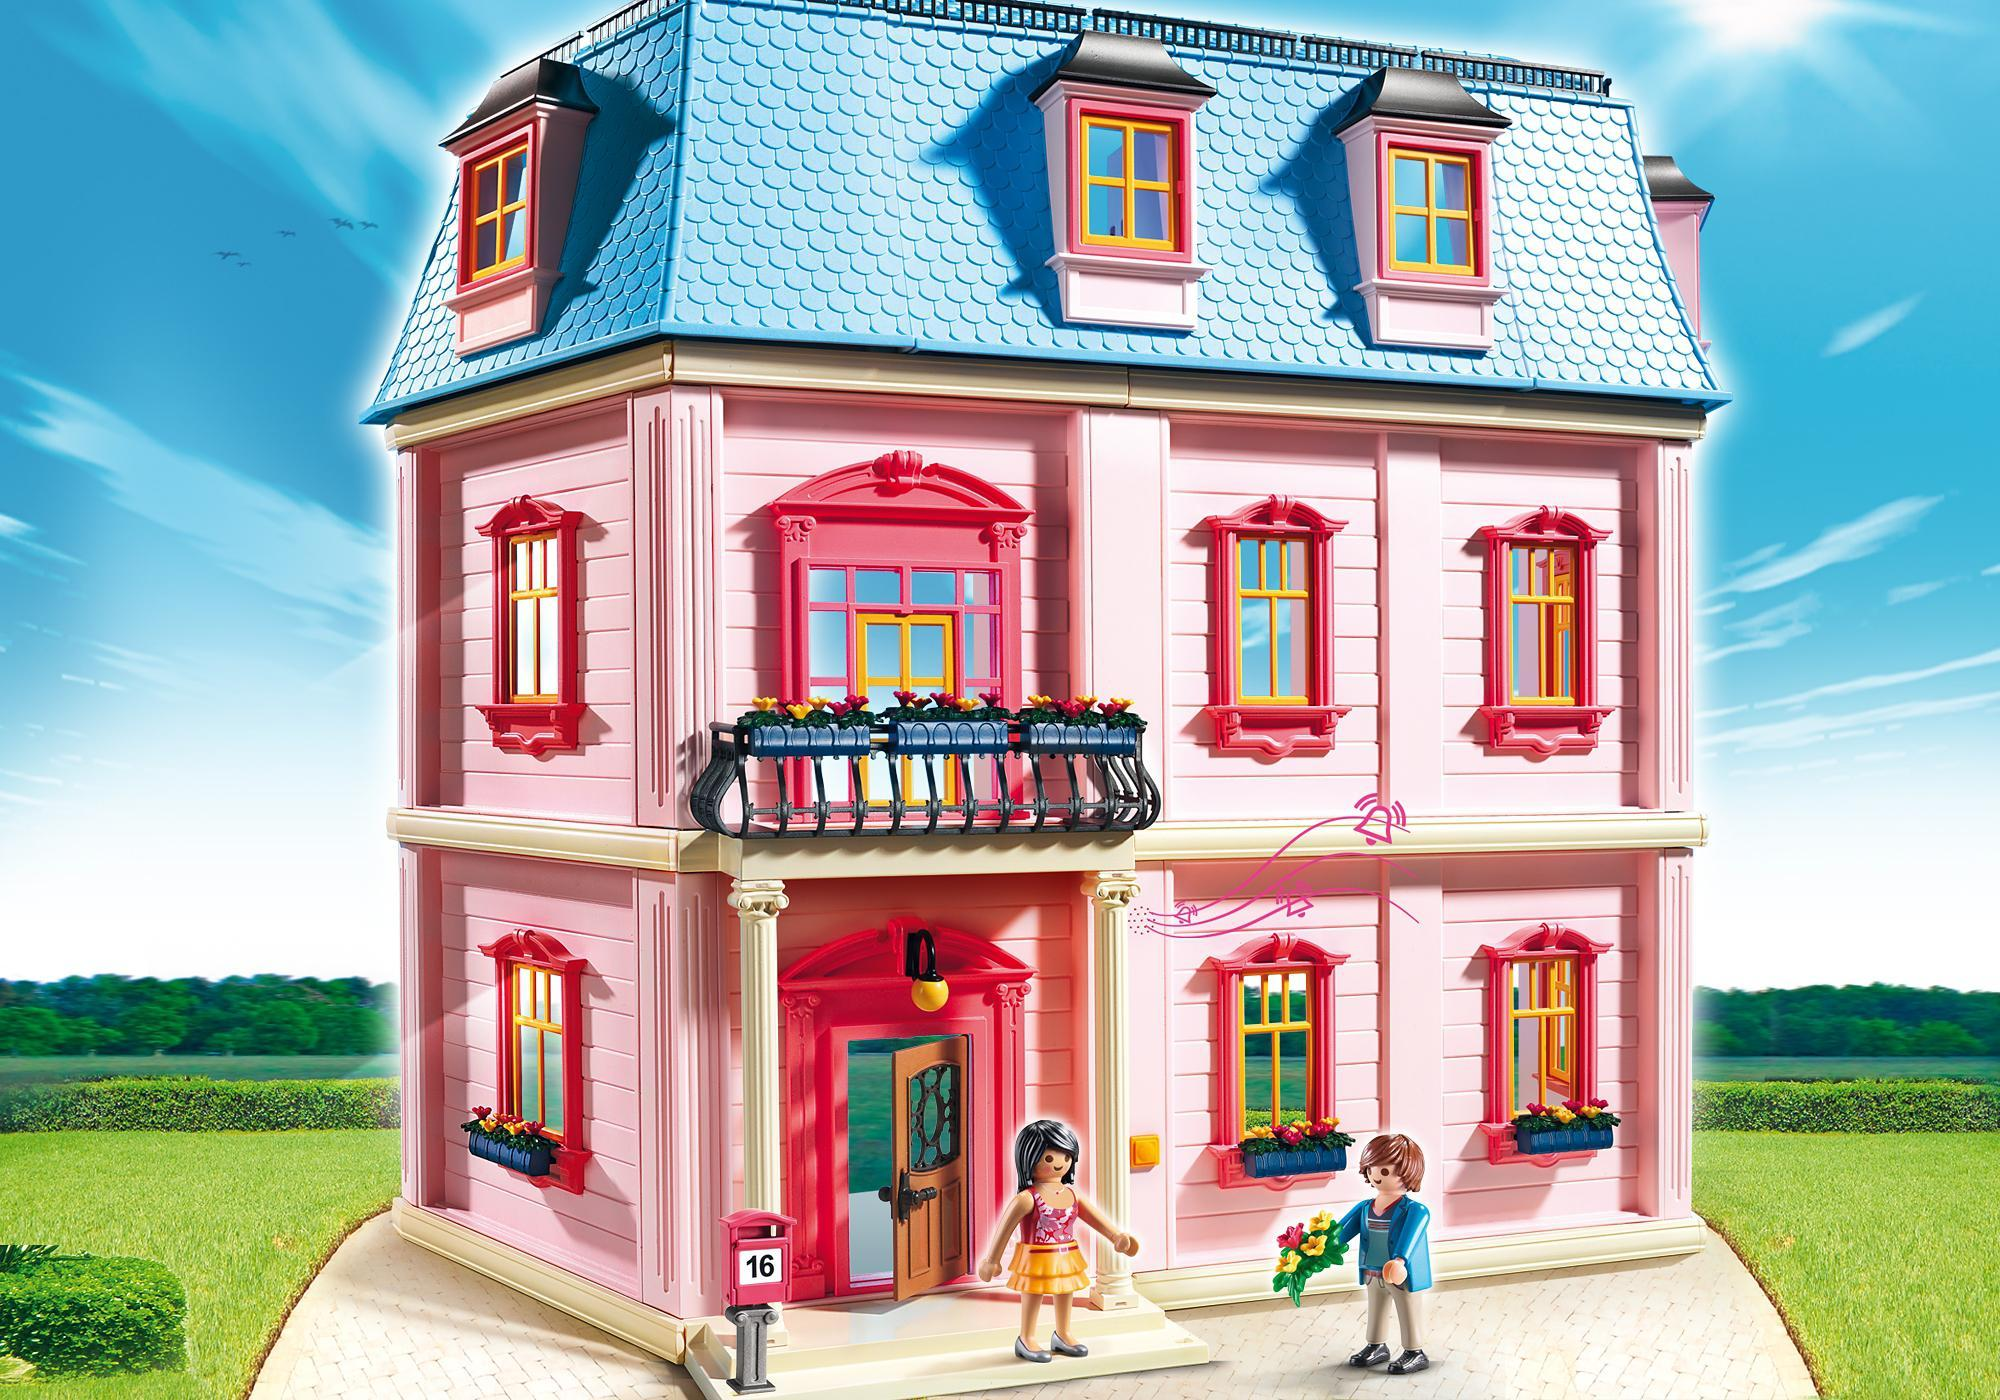 Deluxe Dollhouse 5303 Playmobil 174 Usa